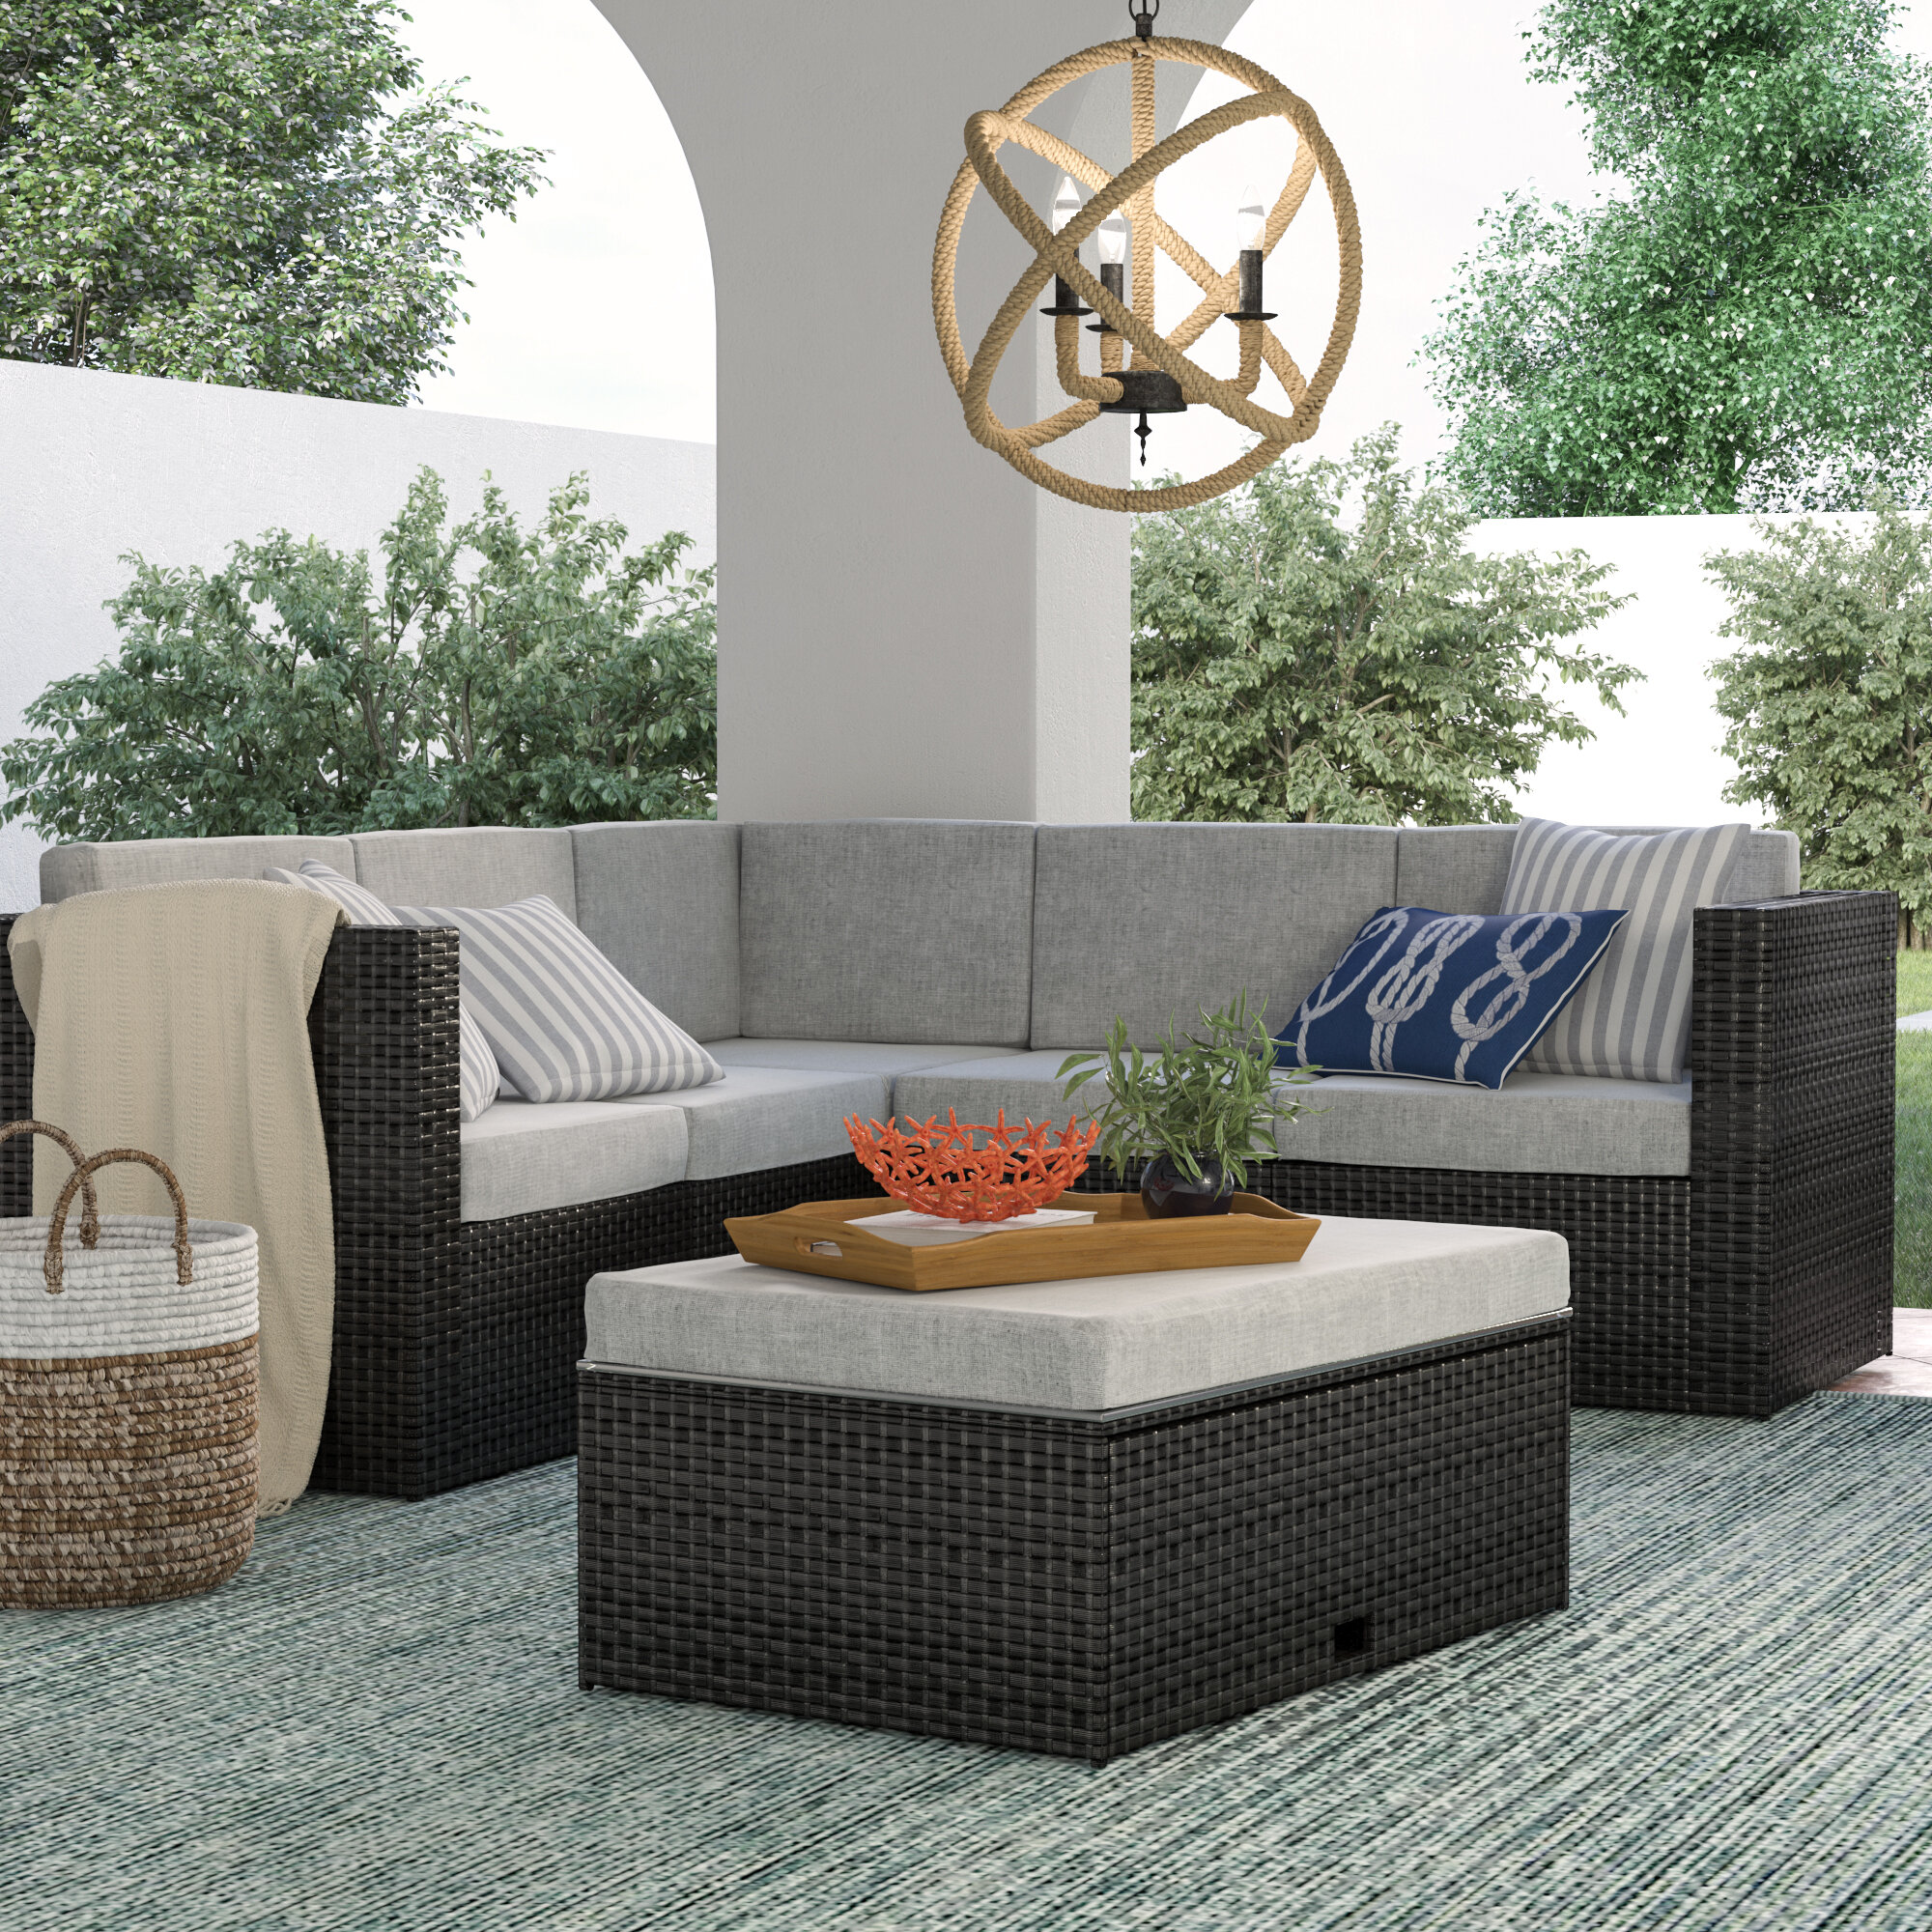 Sol 72 Outdoor Mcnab 4 Piece Rattan Sectional Seating Group With Cushions Reviews Wayfair